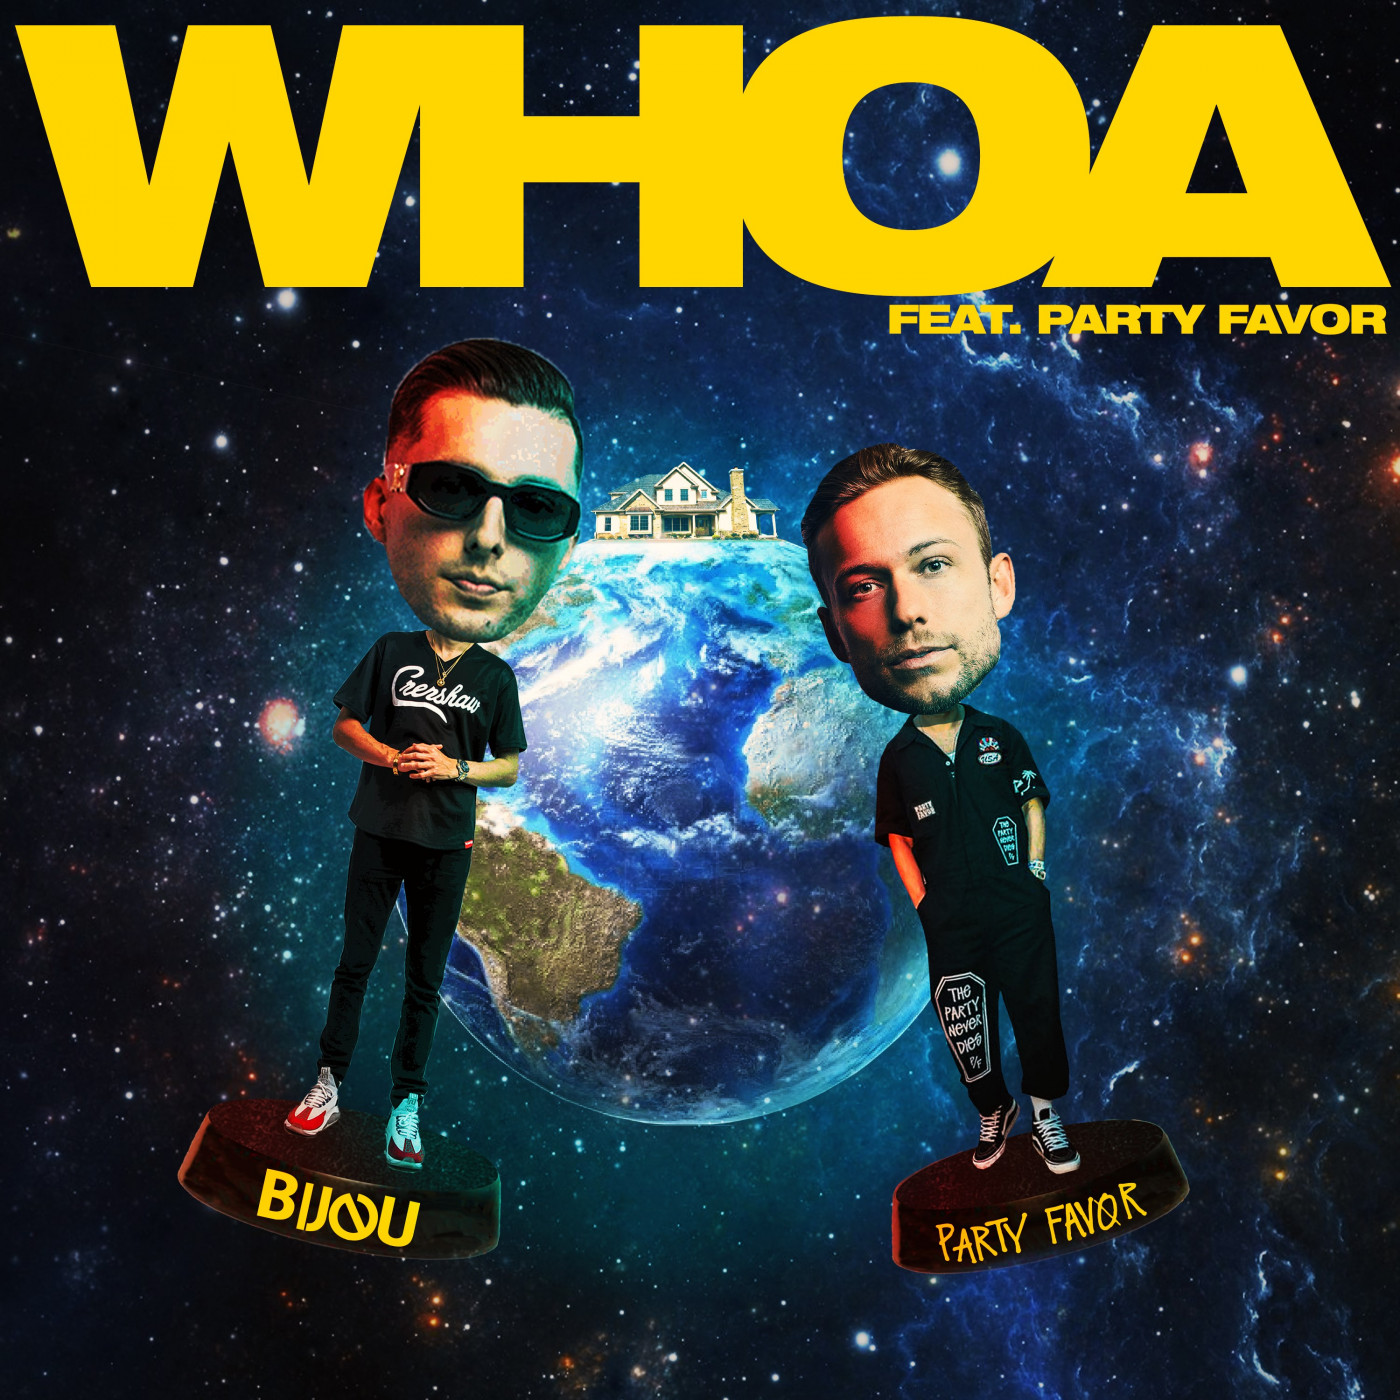 WHOA (feat. Party Favor) Image